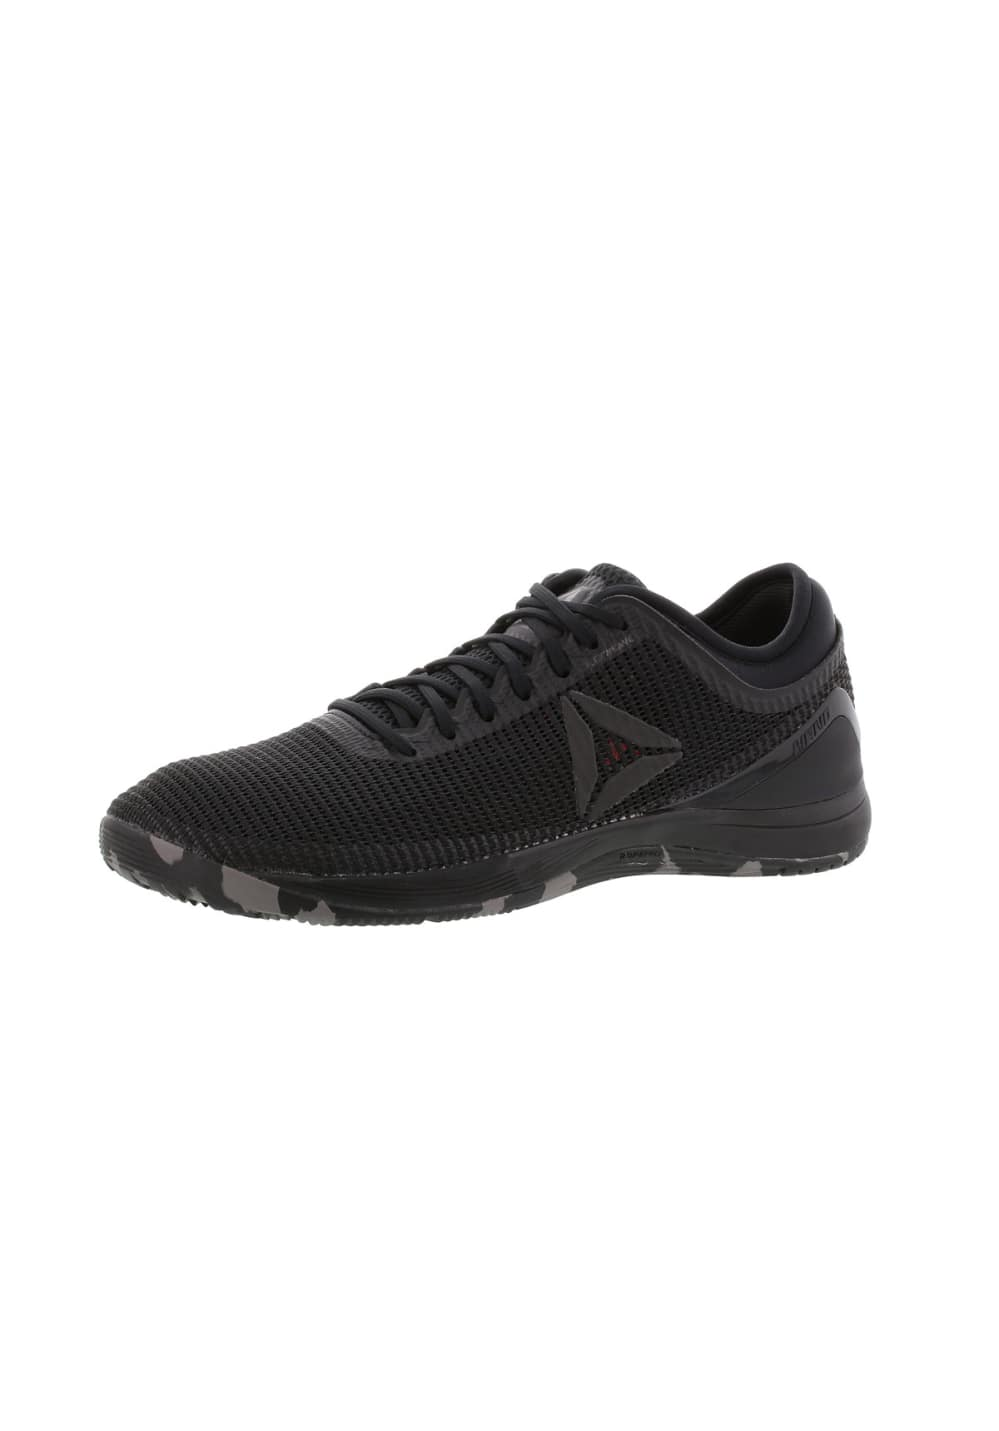 06fab0d7373f Next. -50%. This product is currently out of stock. Reebok. R CROSSFIT NANO  8.0 - Fitness shoes for Men